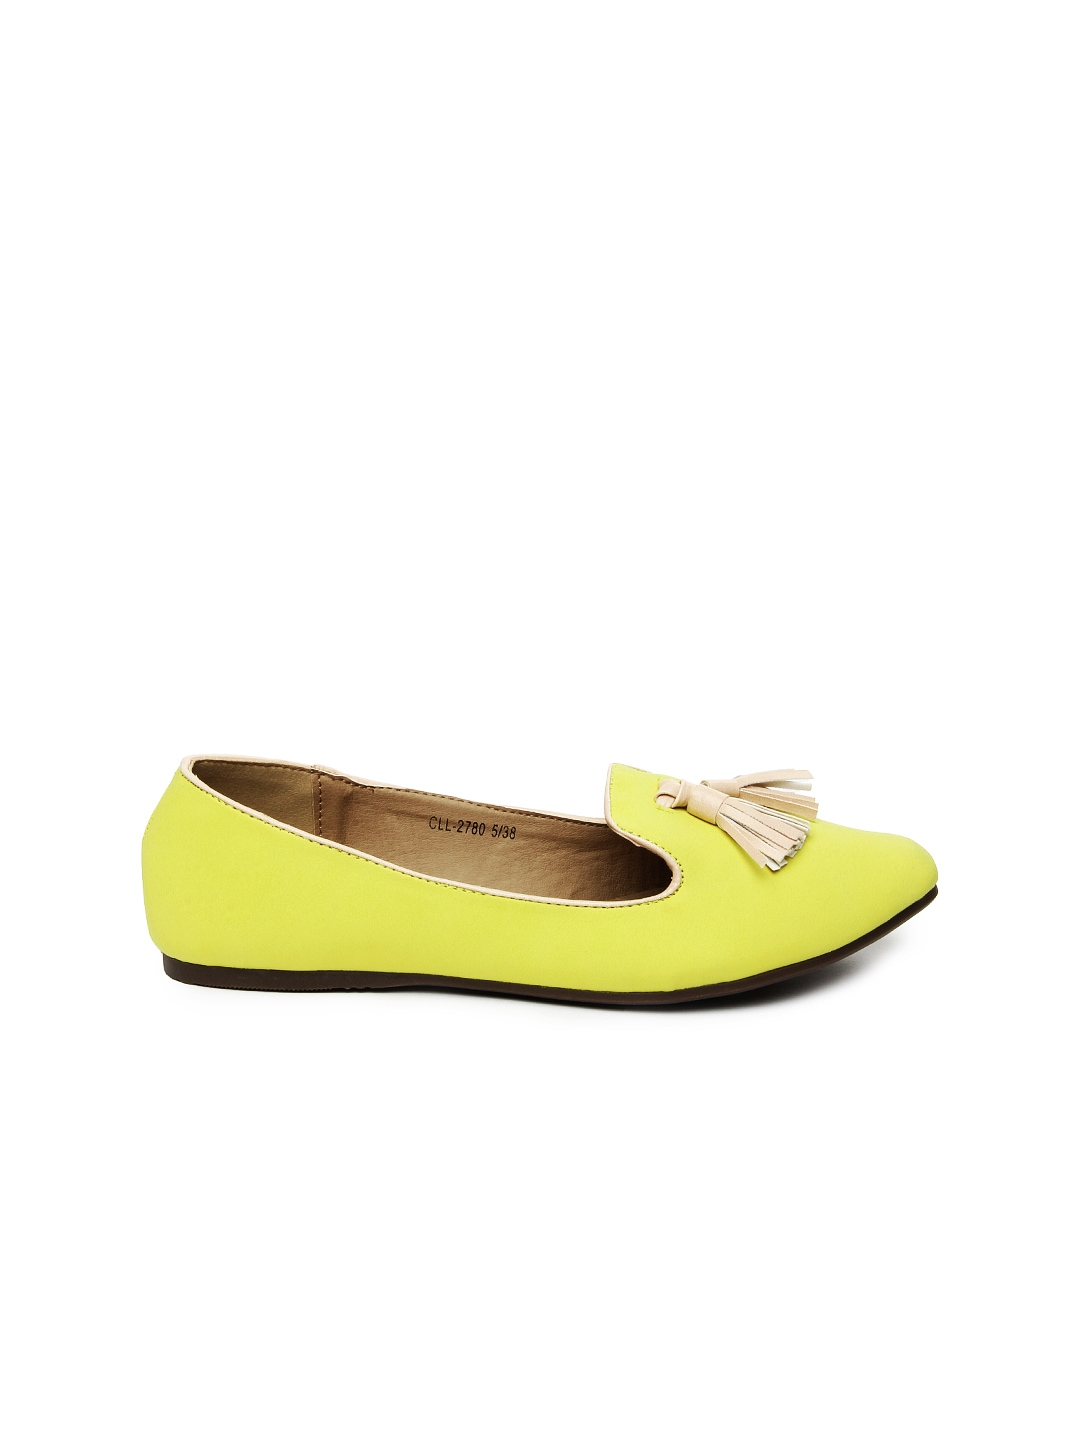 Find great deals on eBay for Womens Yellow Flat Shoes in Flats and Oxfords for Women. Shop with confidence.